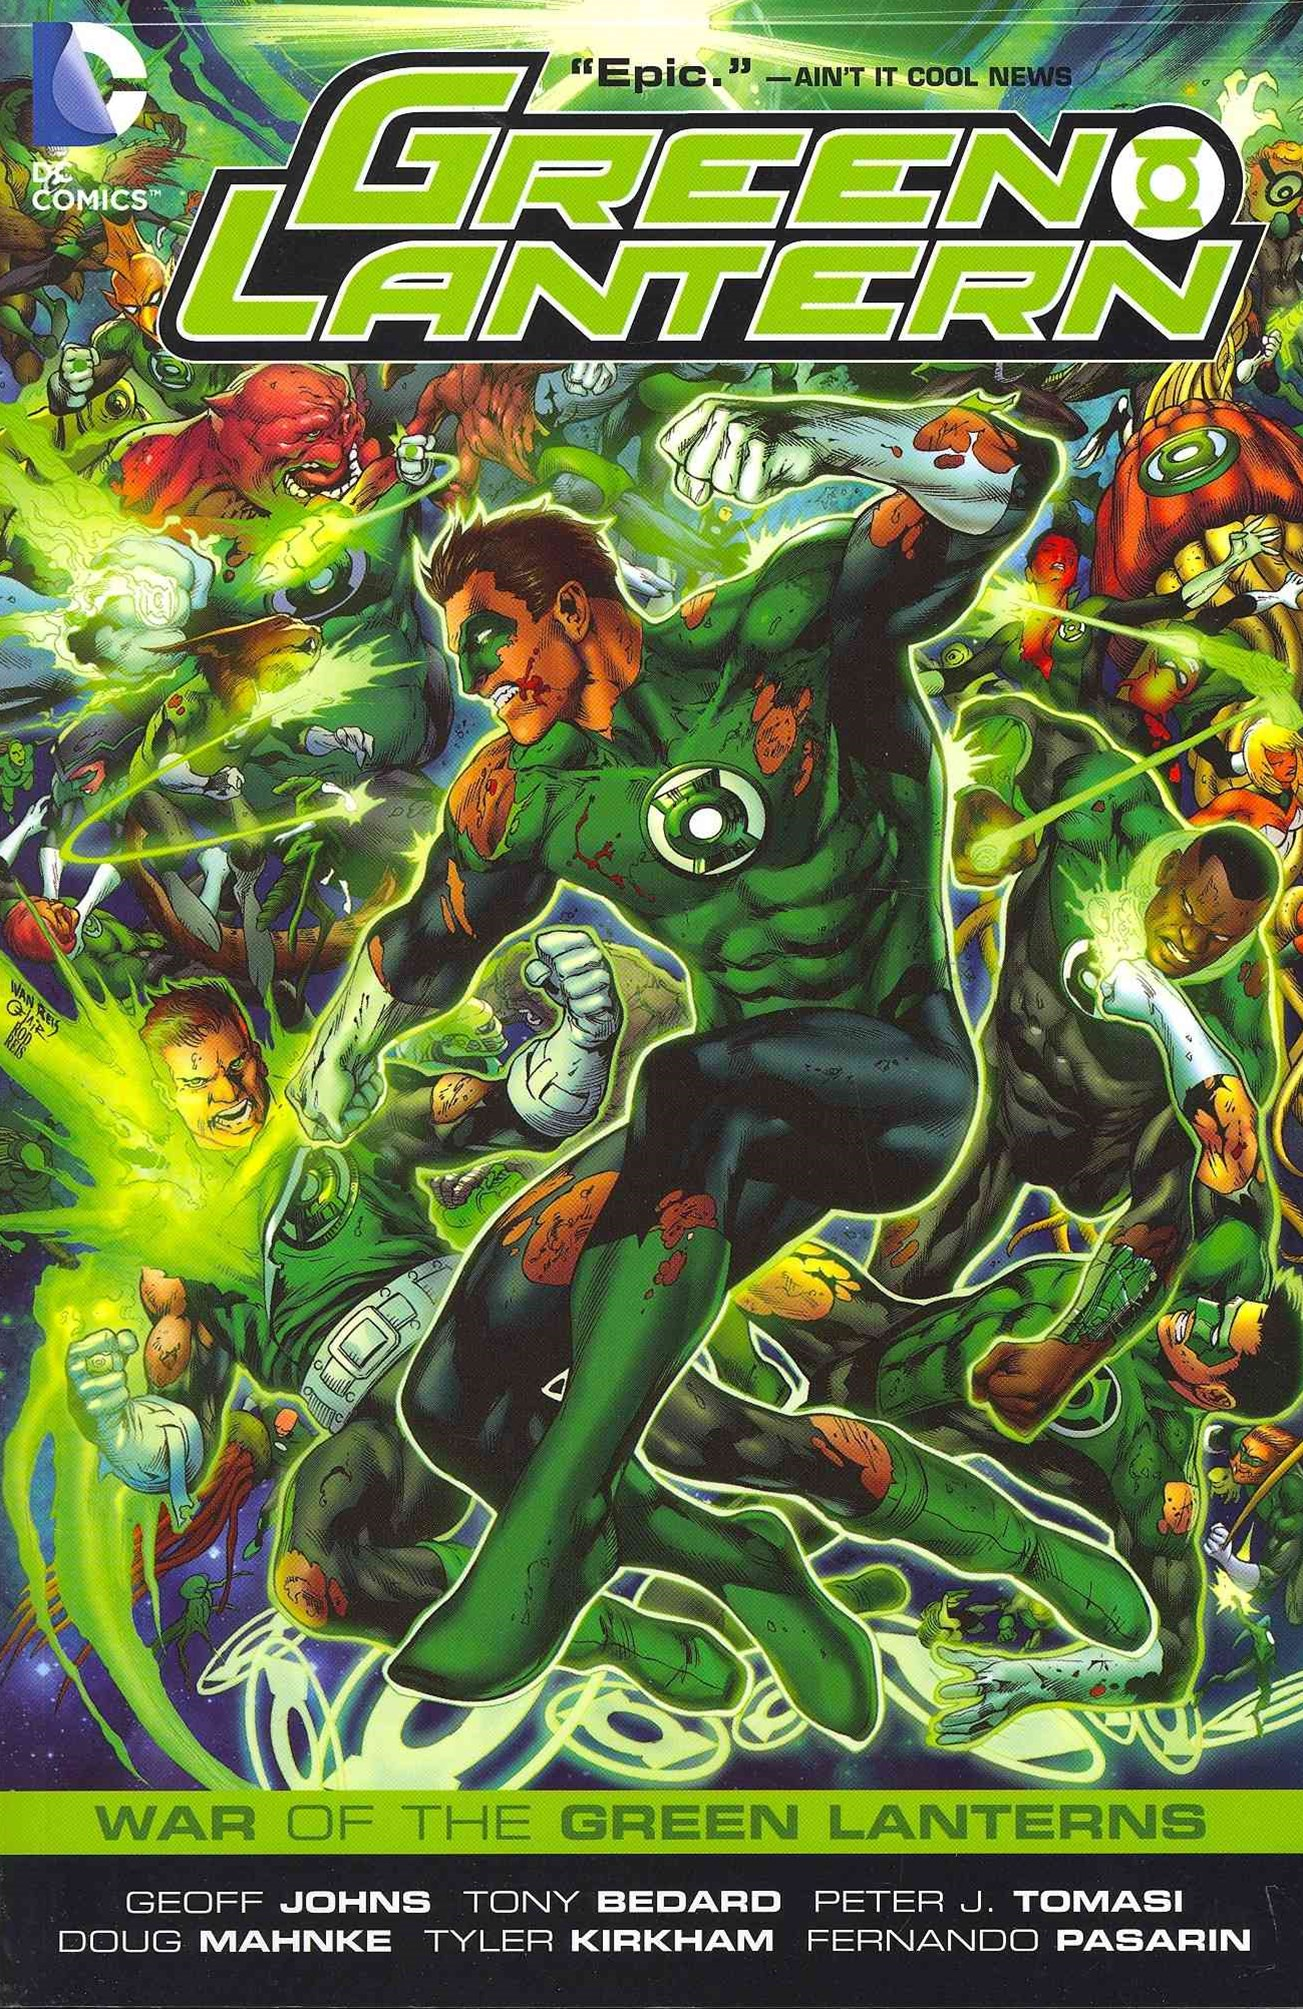 War of the Green Lanterns